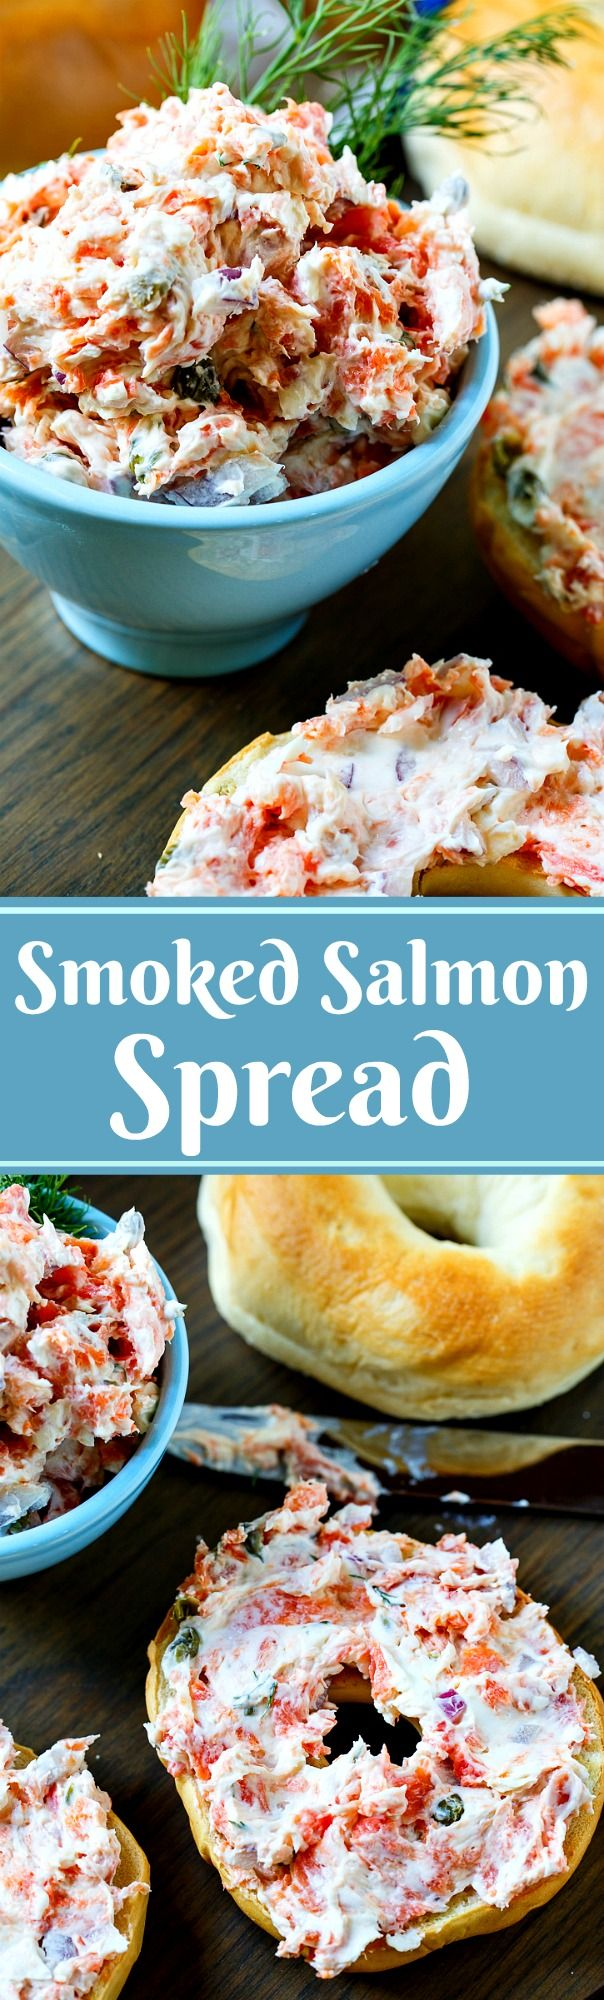 Smoked Salmon Spread- easy and delicious dip!